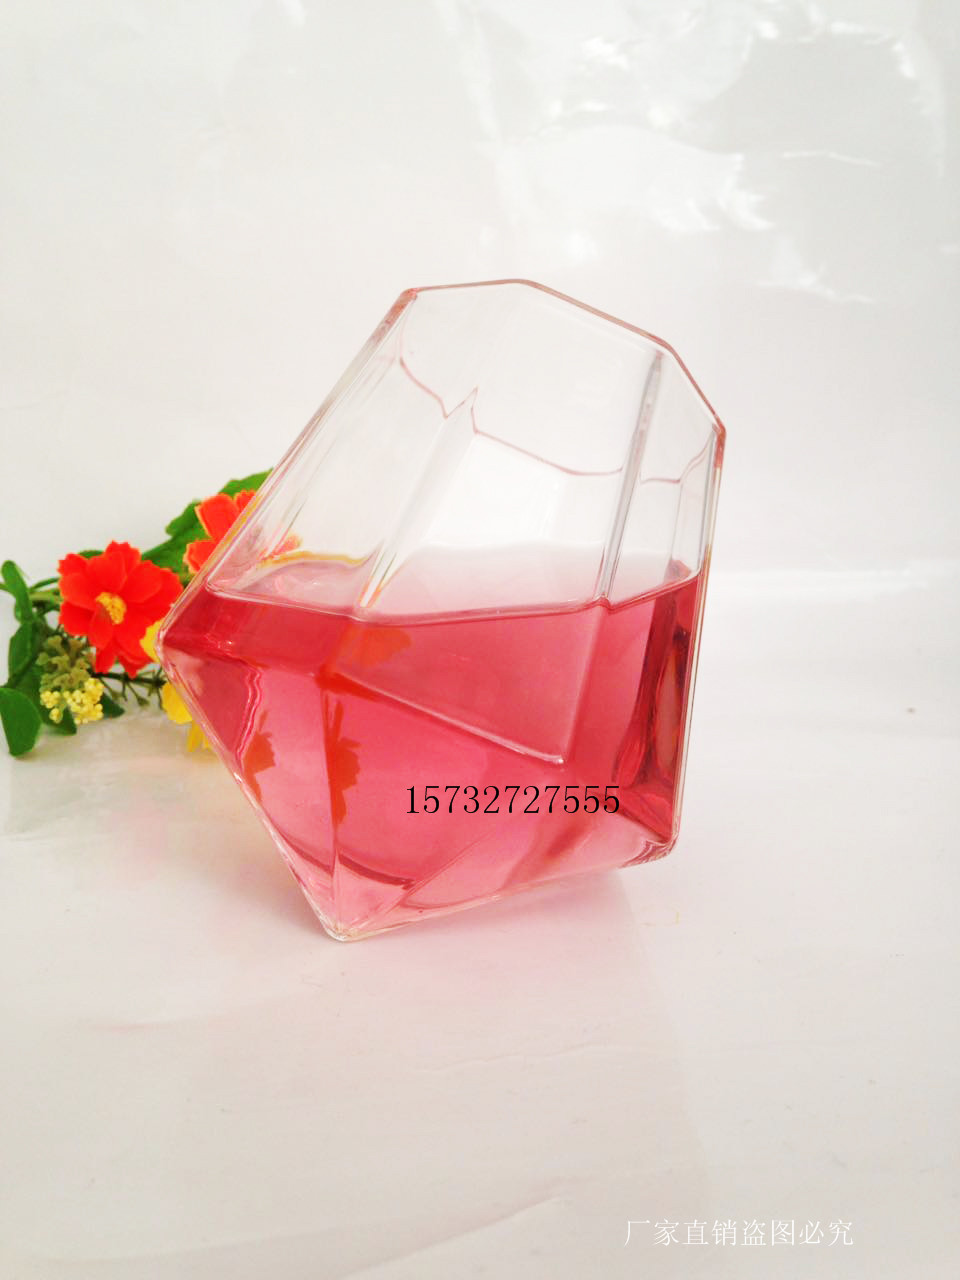 diamond shape round whisky glass cup,vodka glass cup